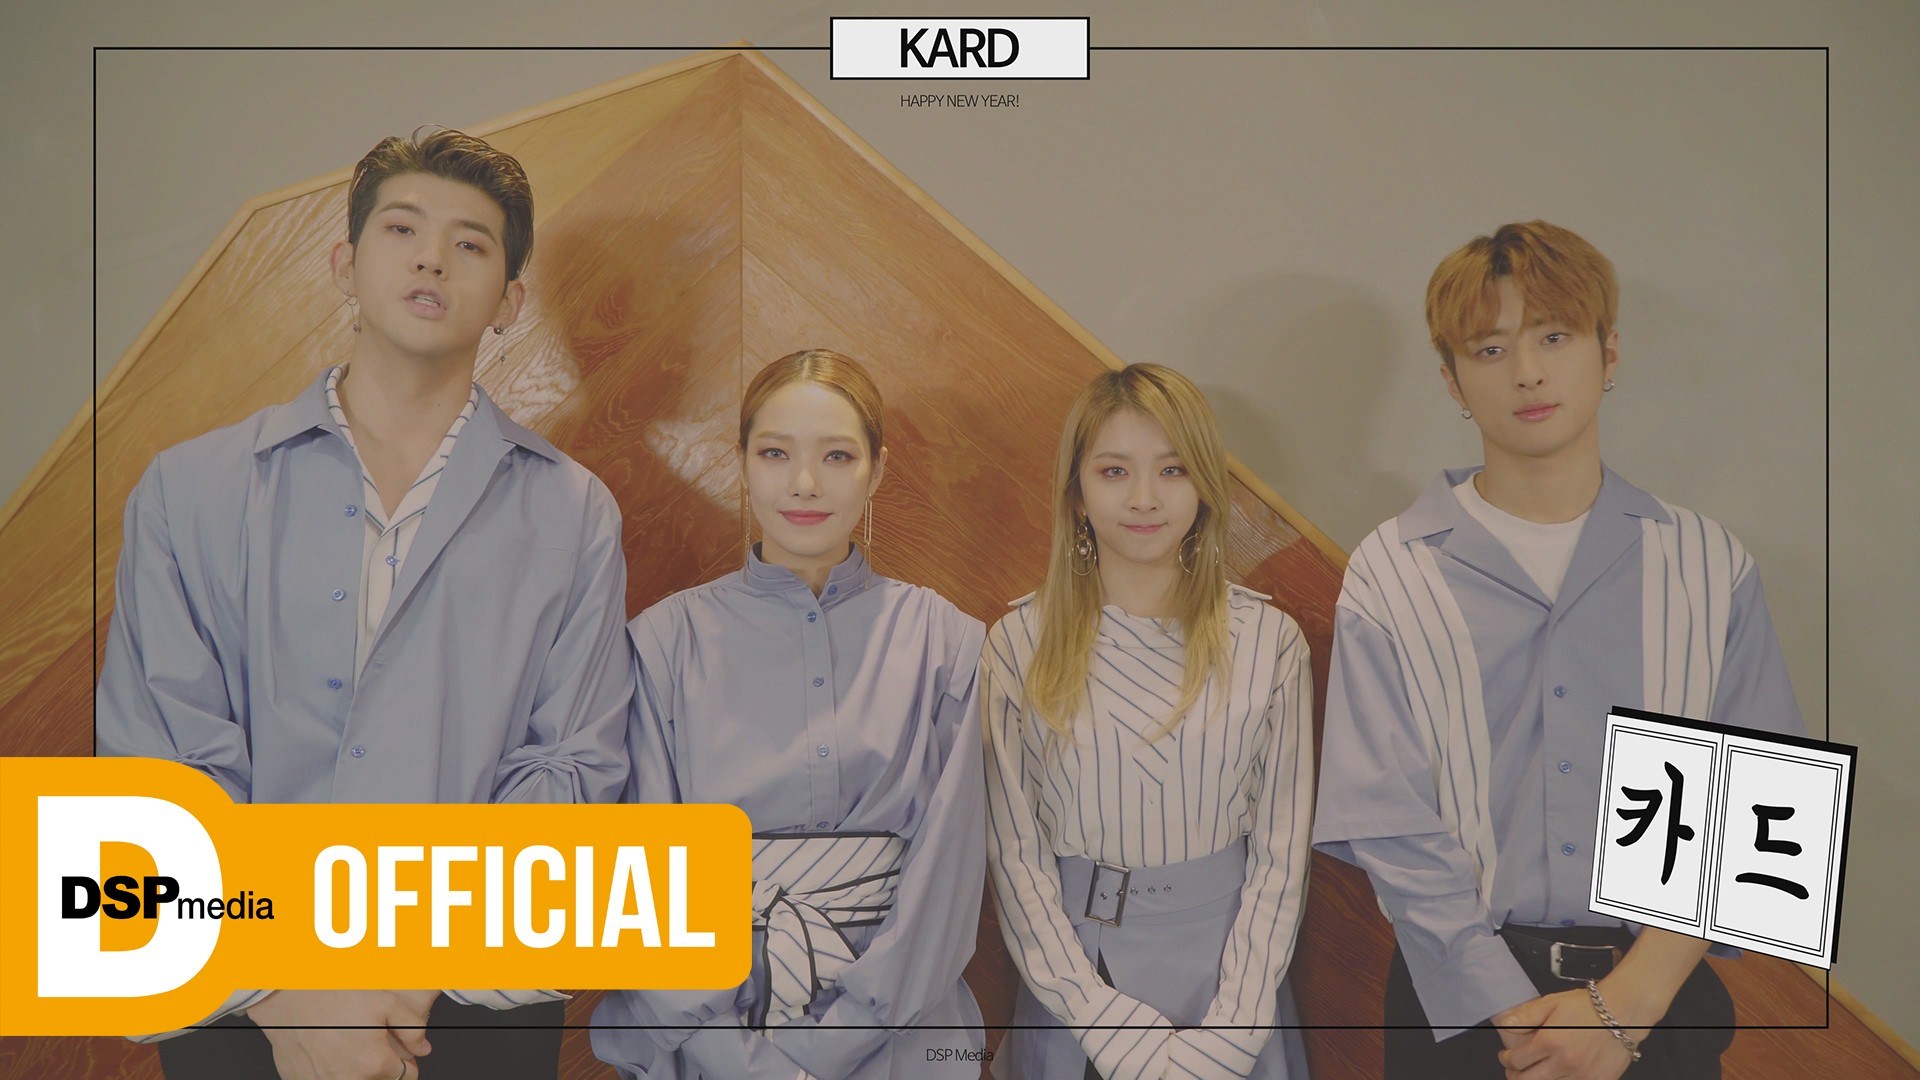 A letter from KARD